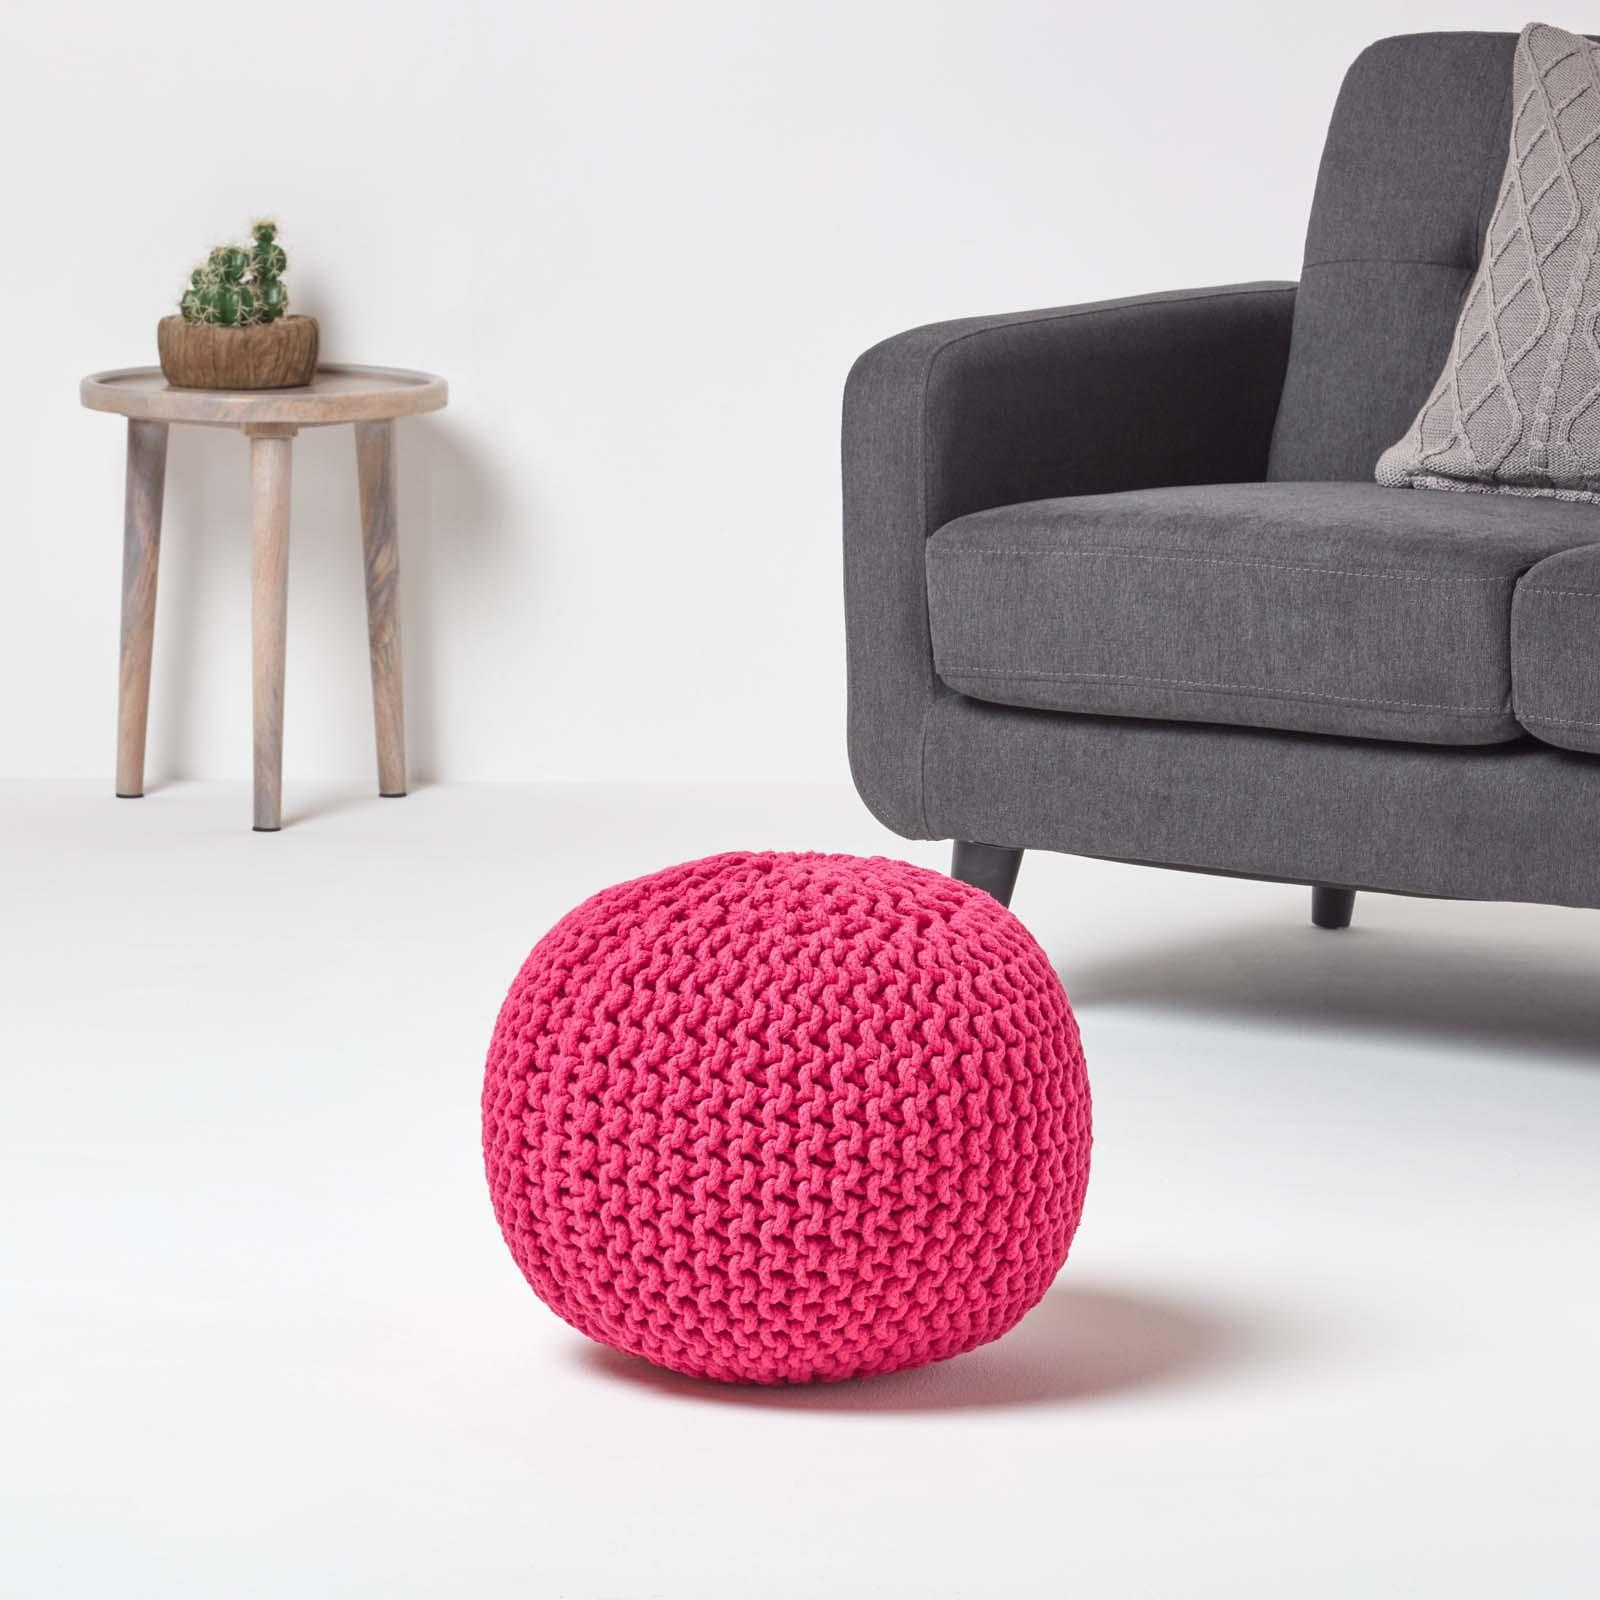 Hand-Knitted-100-Cotton-Pouffes-Round-Sphere-Or-Cube-Square-Chunky-Footstools thumbnail 63